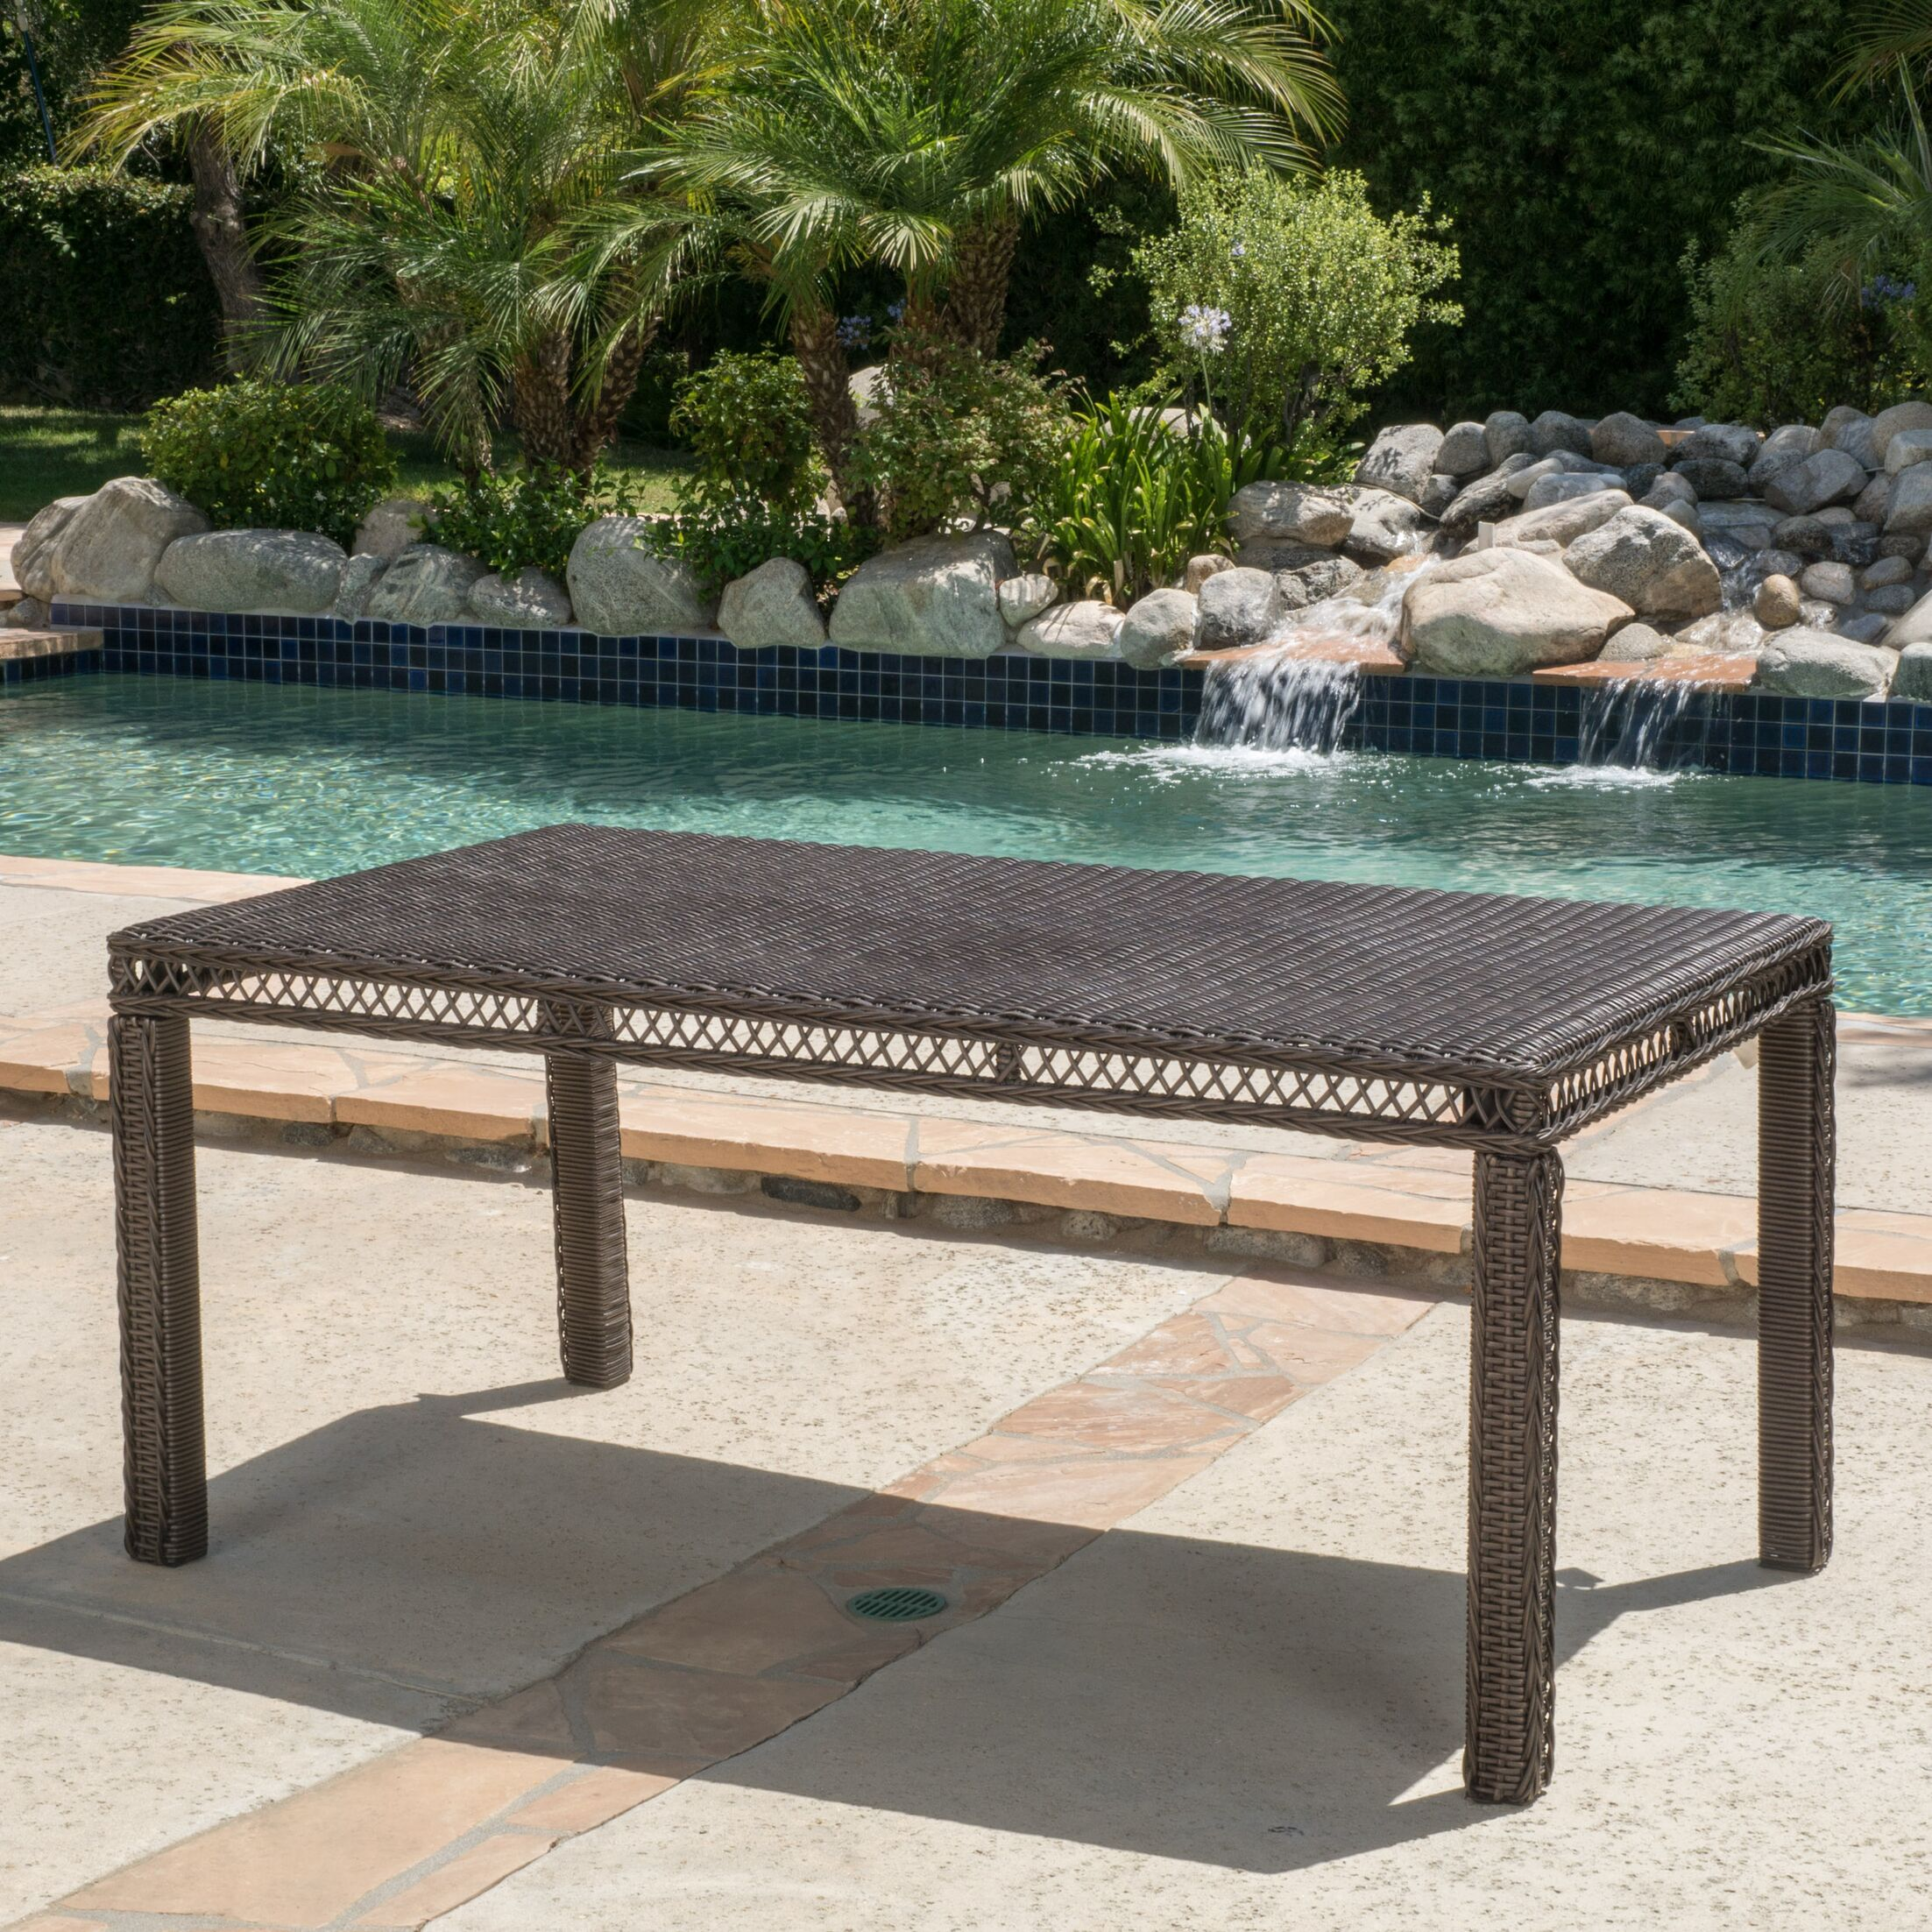 Made from sturdy polyethylene wicker and an iron frame, this large table will be perfect for your outdoor gatherings. Features: -Contemporary style.-Material: PE wicker and iron.-Outdoor use.-Product Type: Dining Table.-Outer Frame Material: Metal -Ou...